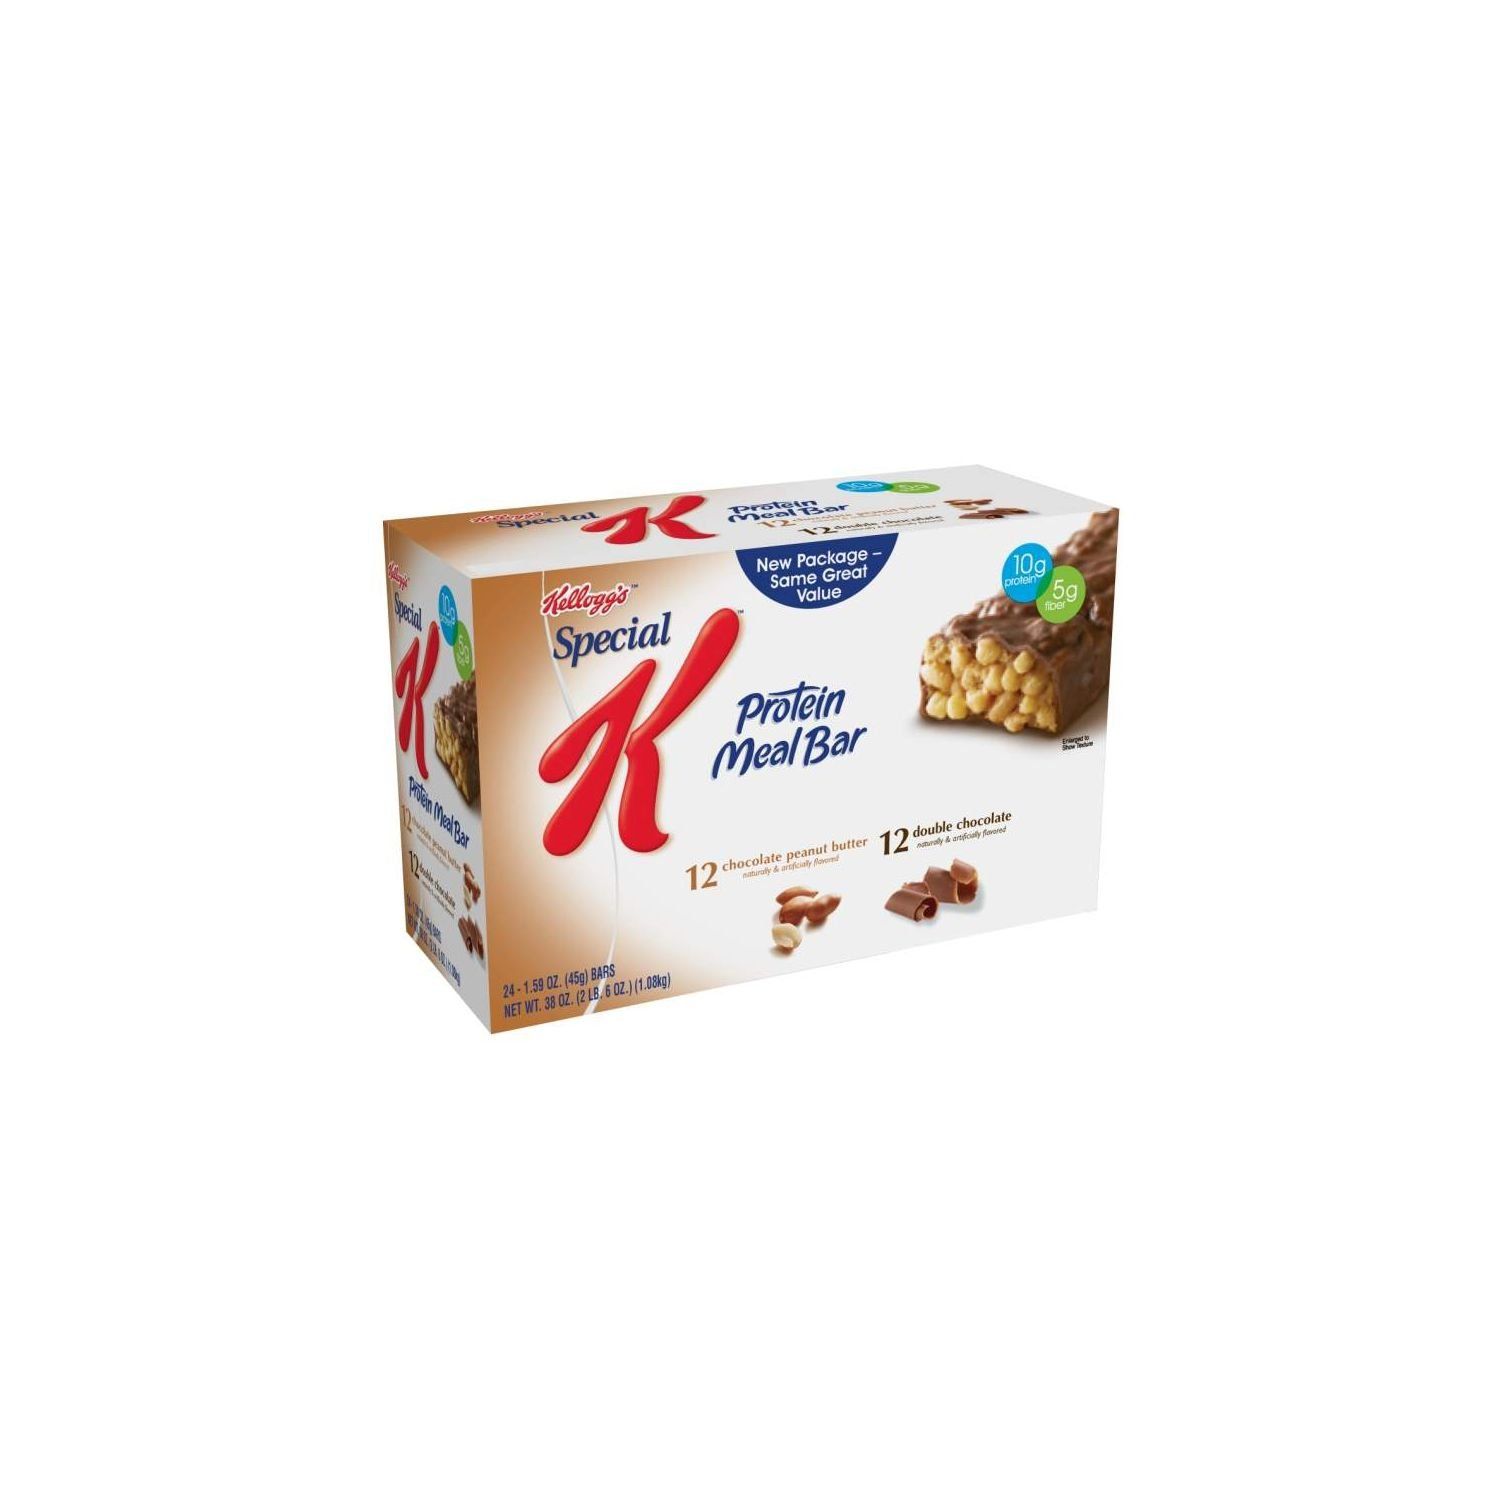 Kellogg's Special K Protein Meal Bar, Variety Pack, 12 Double Chocolate and 12 Chocolate Peanut Butter, 1.59-Ounce Bars, Pack of 24